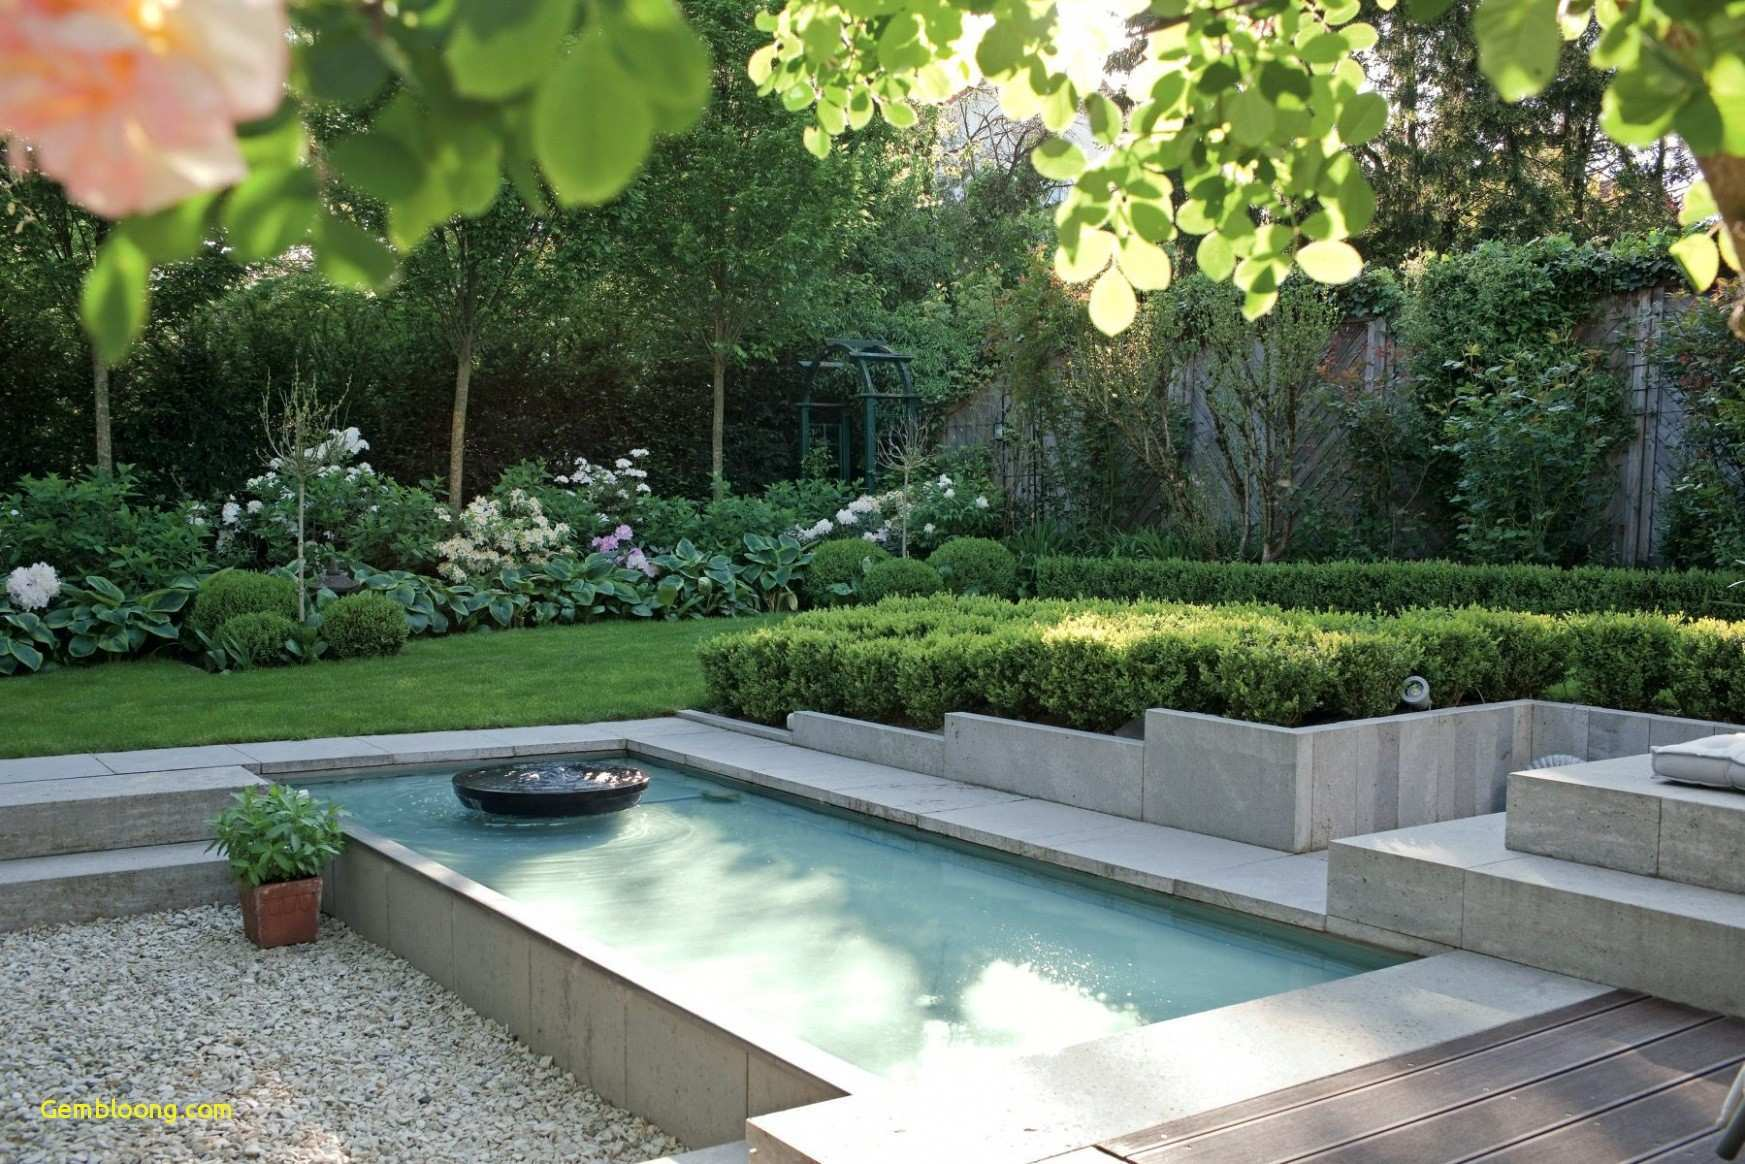 Luxury Lawn ornaments and Fountains Home Fountains Ideas